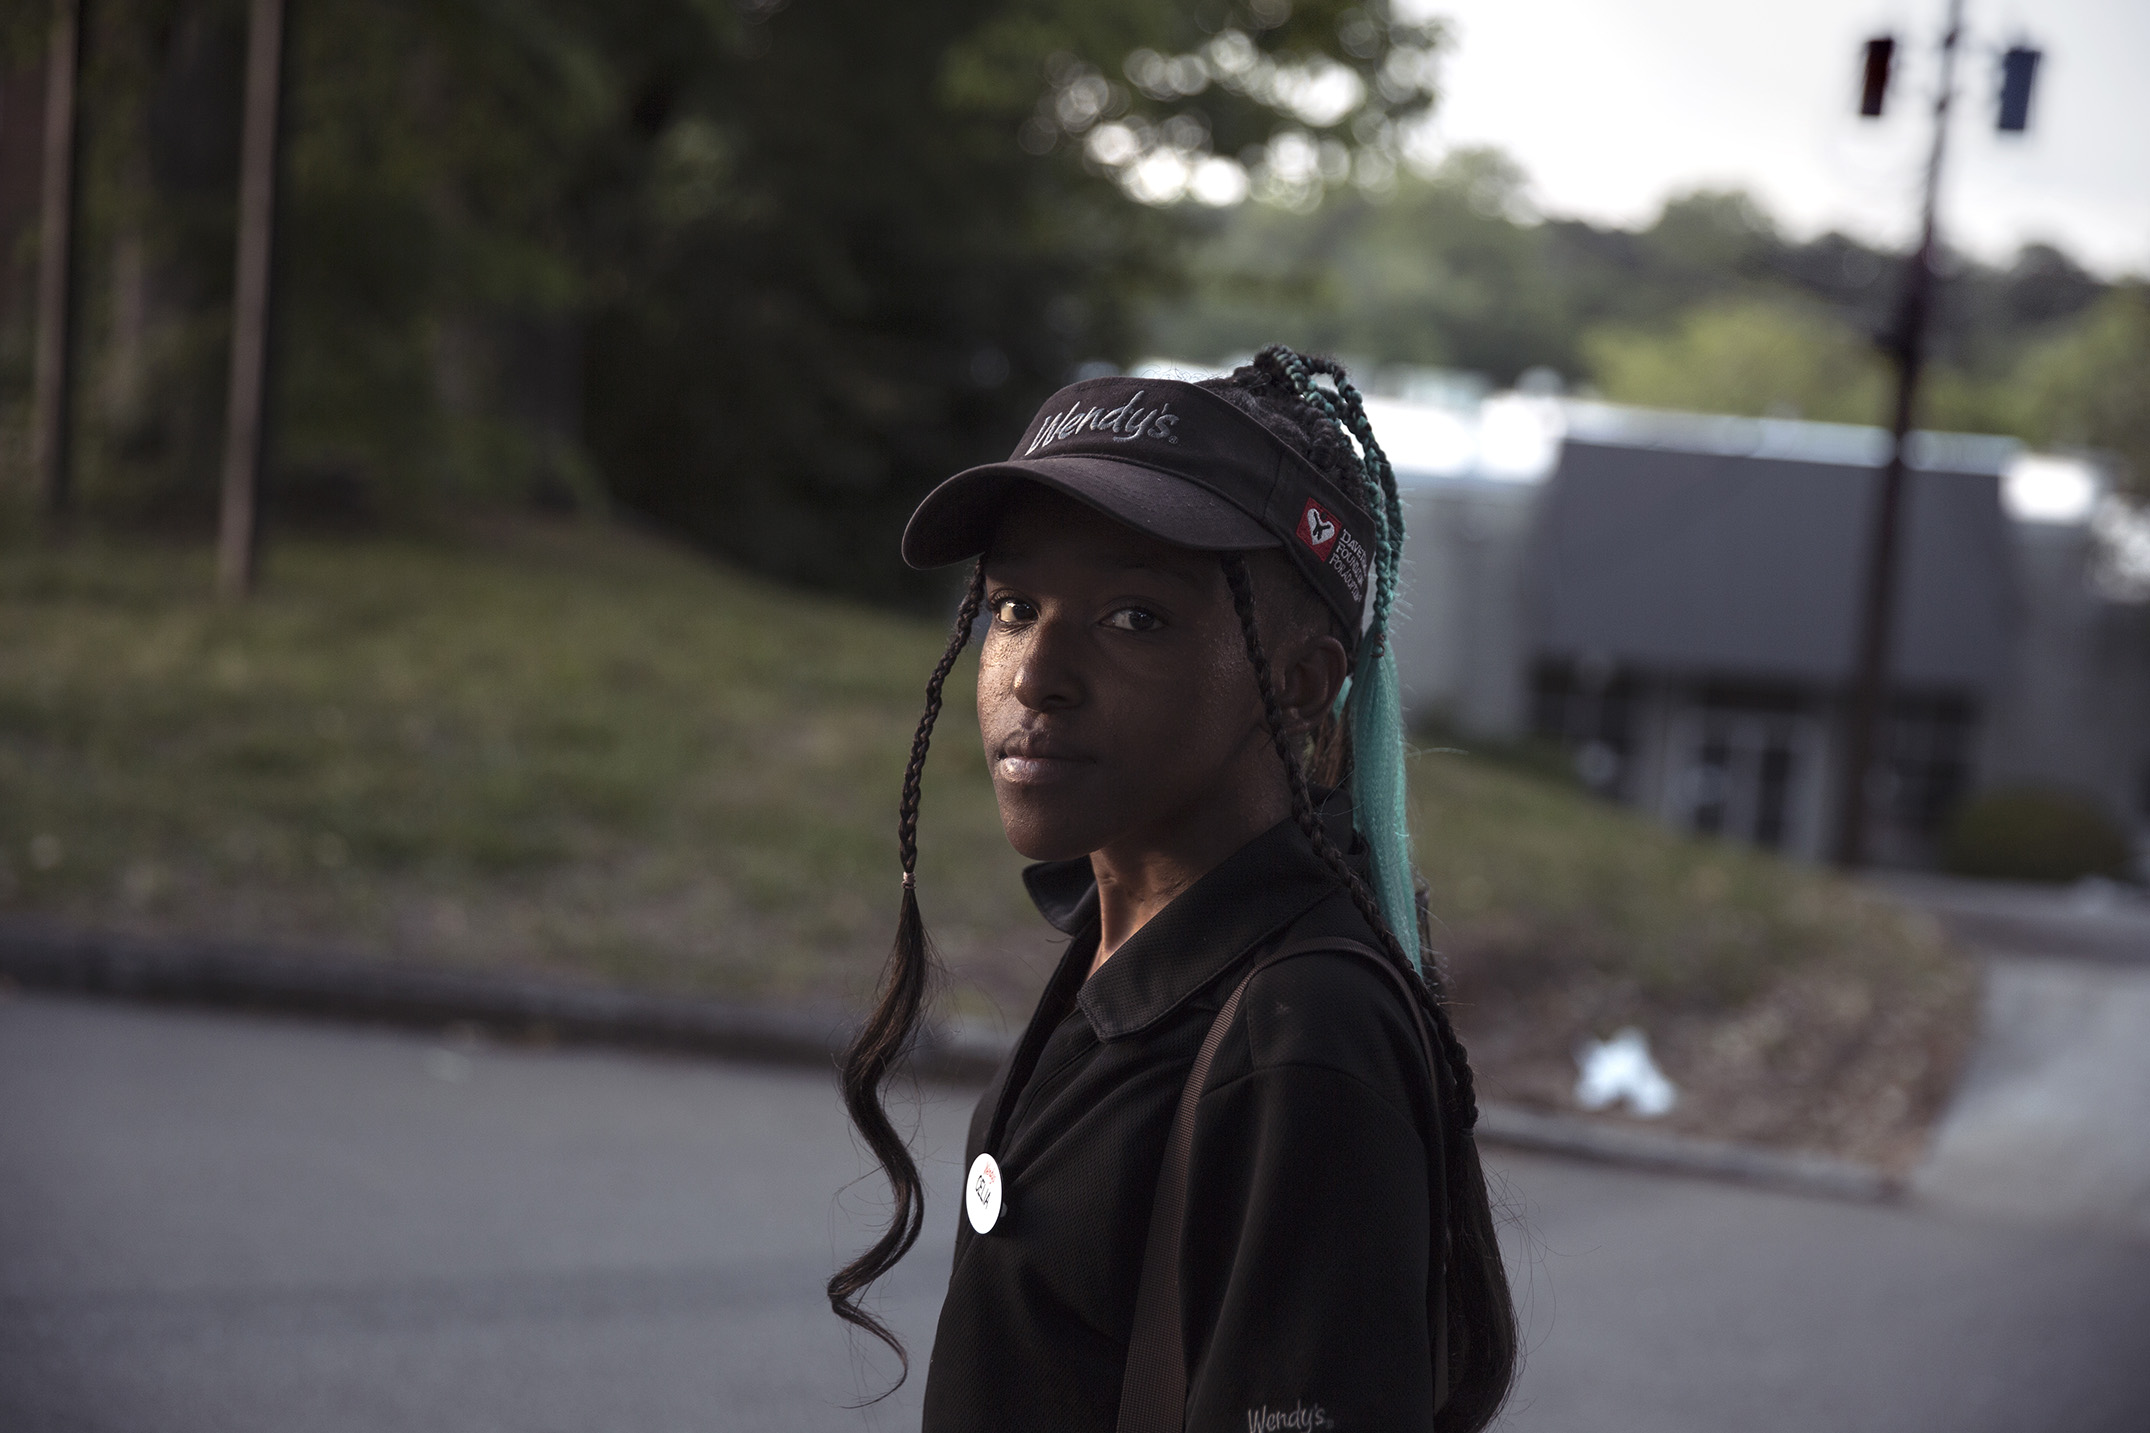 Mike Kane | Homeless youth in Atlanta | Seattle documentary, editorial, and commercial photography